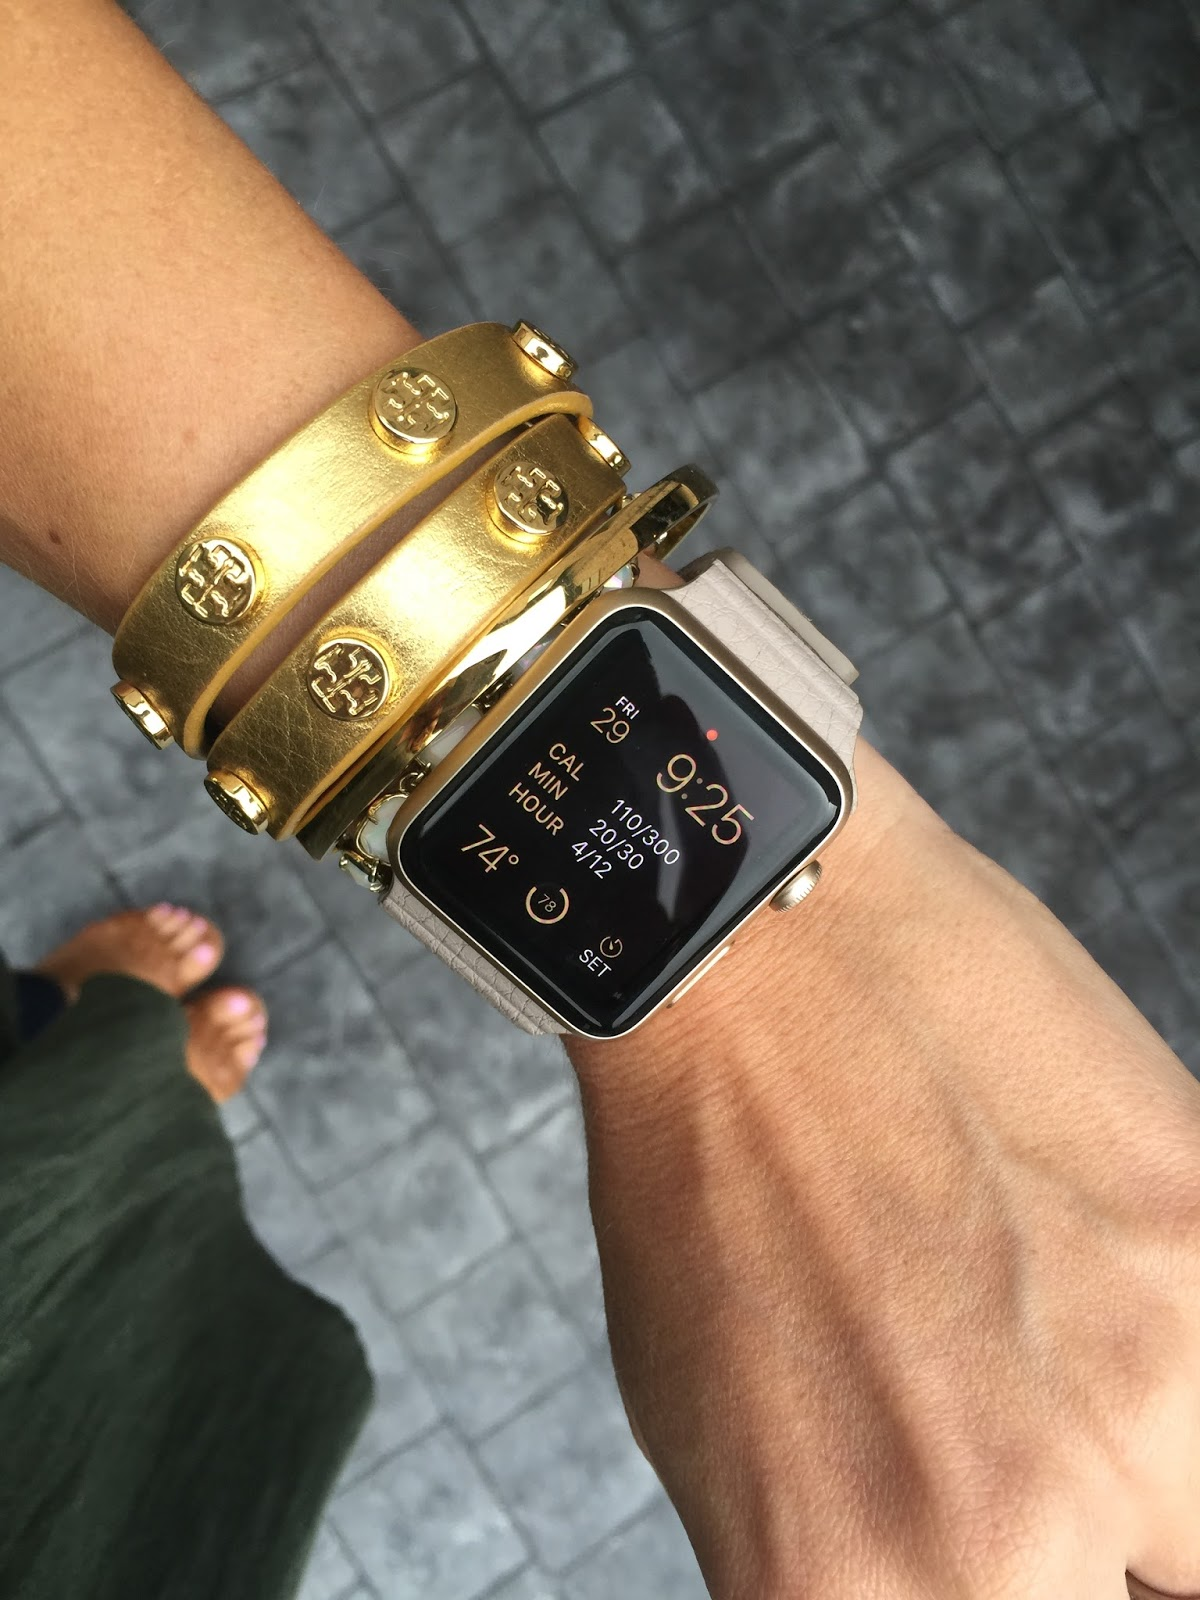 this match looks apple watch